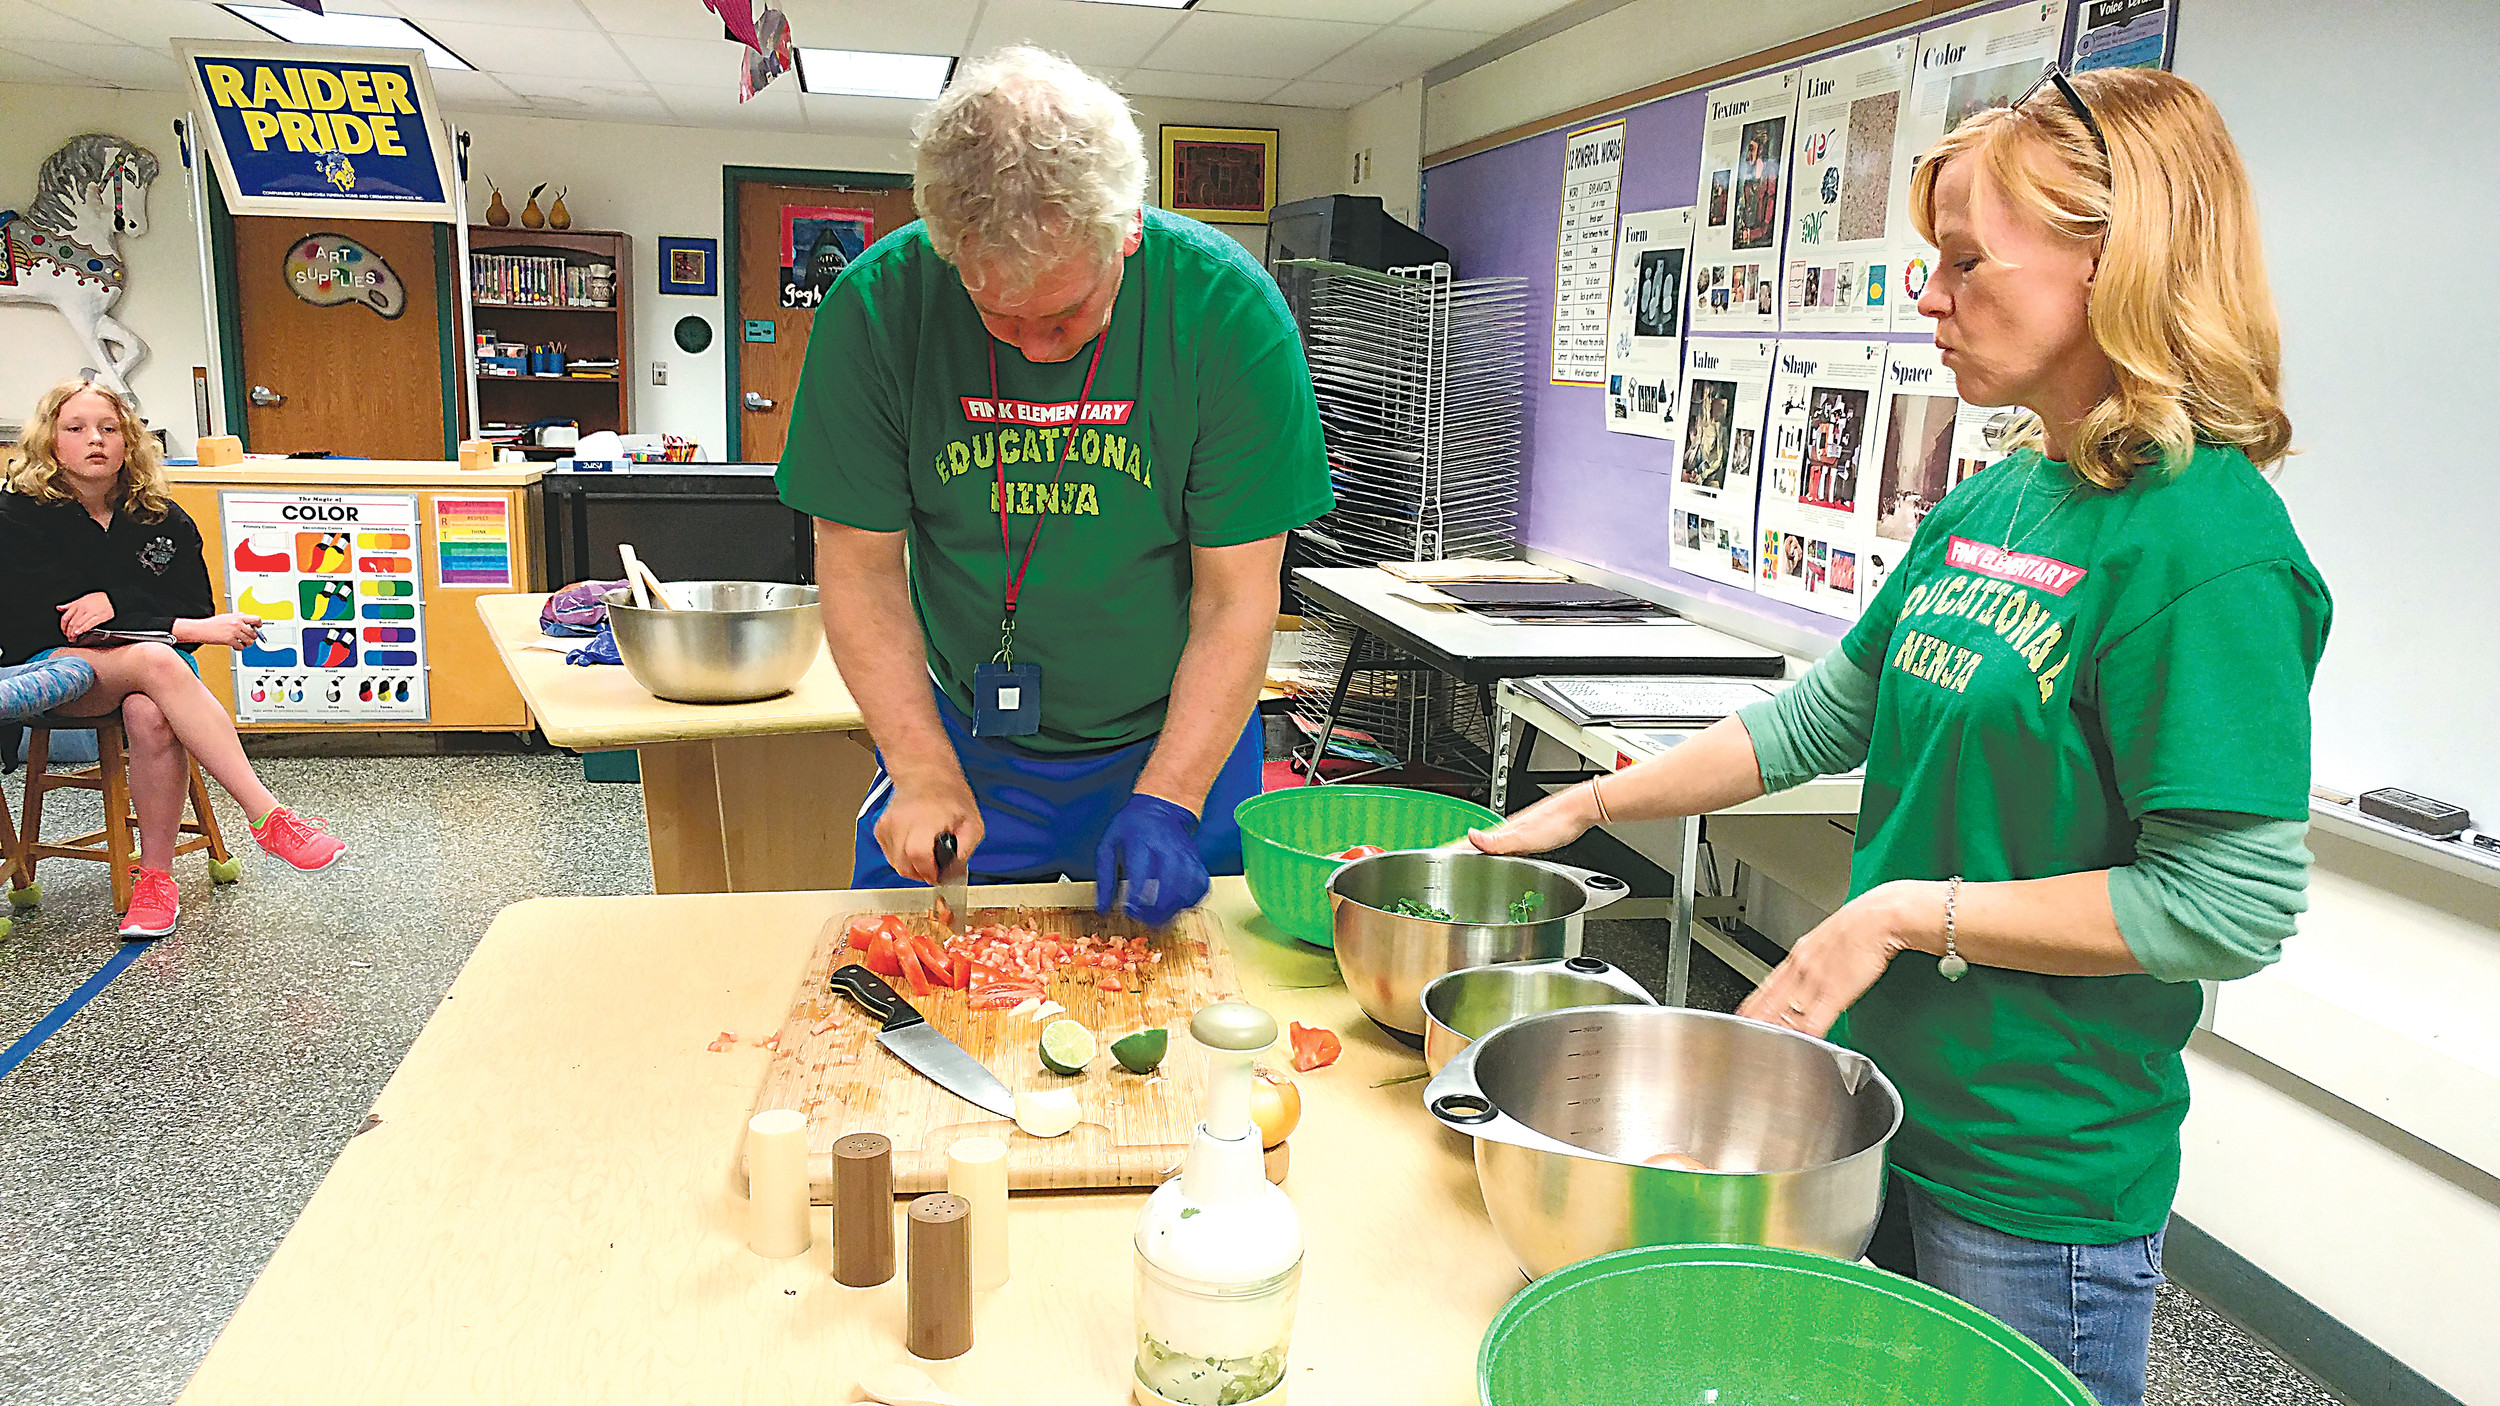 Michael Corney chops a tomato up during a salsa-making lesson during Cultural Day as Mindy Allison discusses the other ingredients needed for salsa.